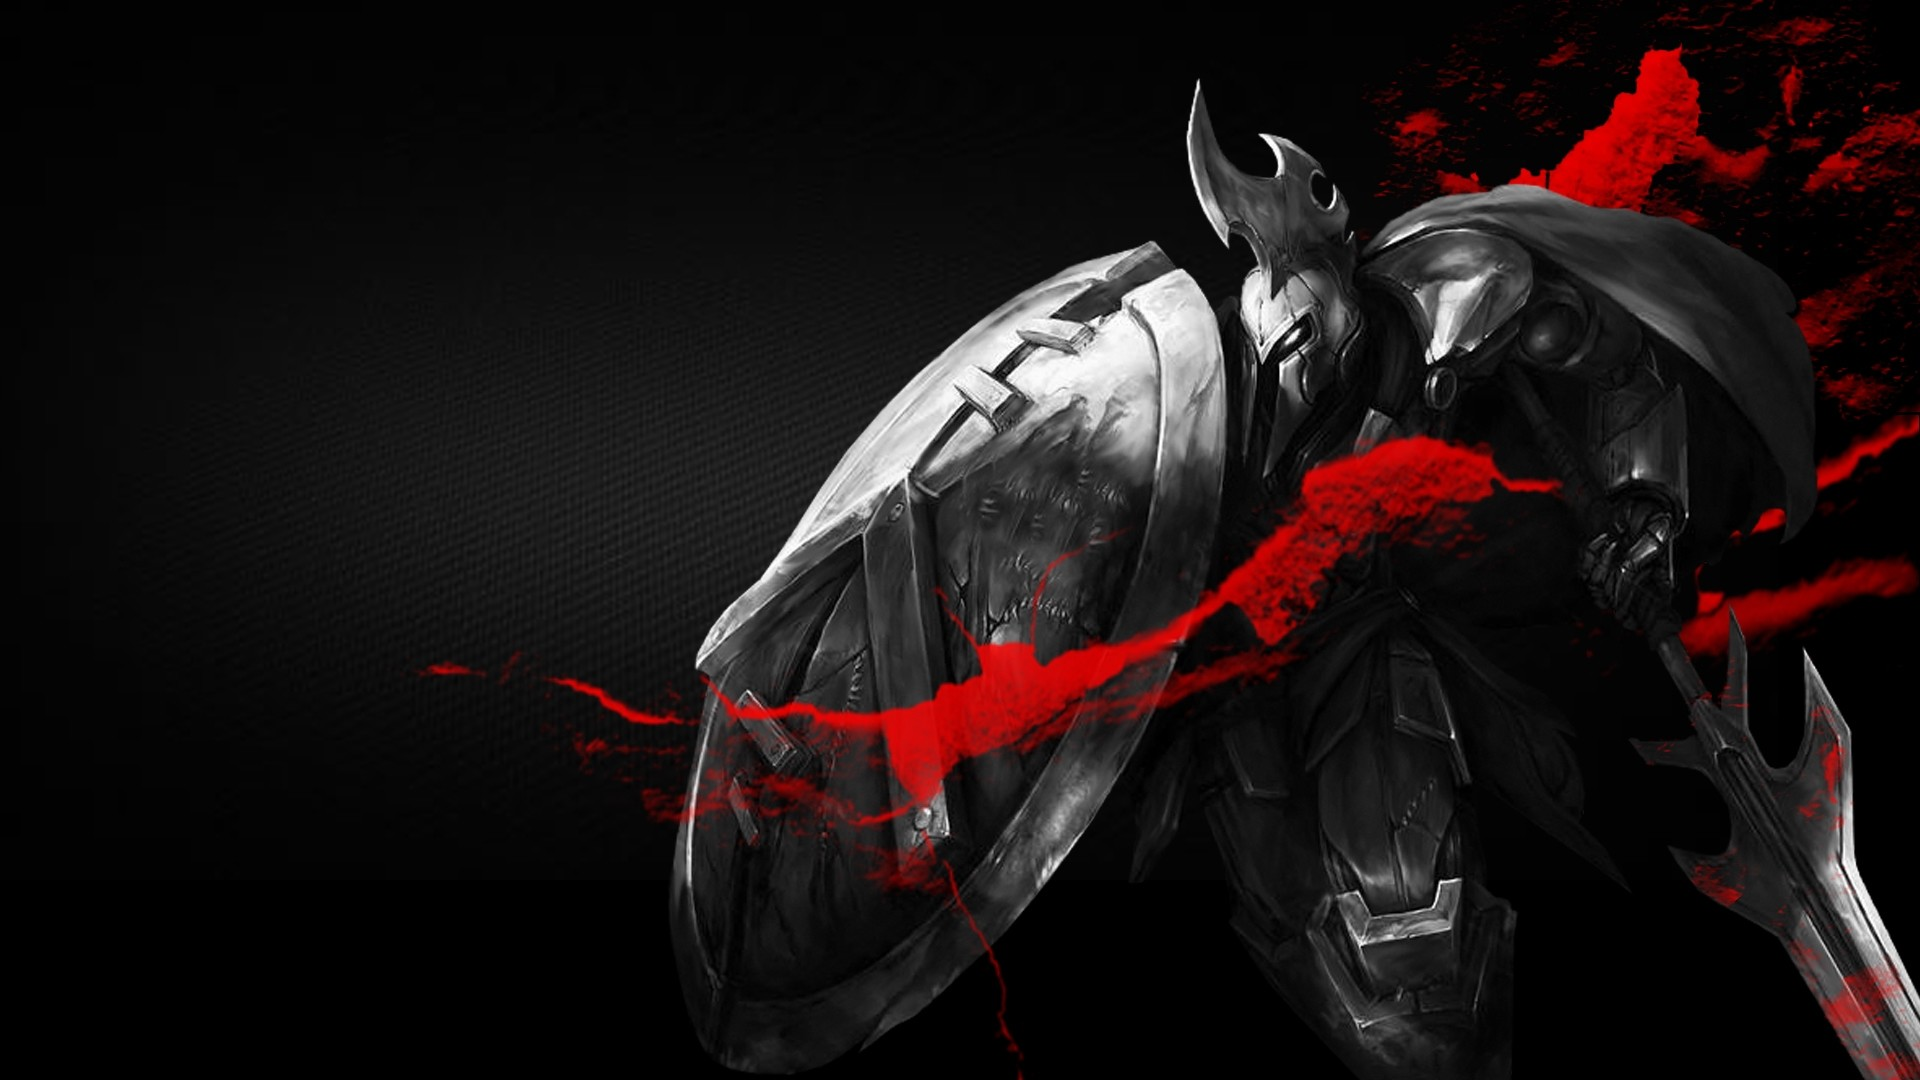 Epic Wallpaperz: HD Wallpapers 1920x1080 Badass (78+ Images